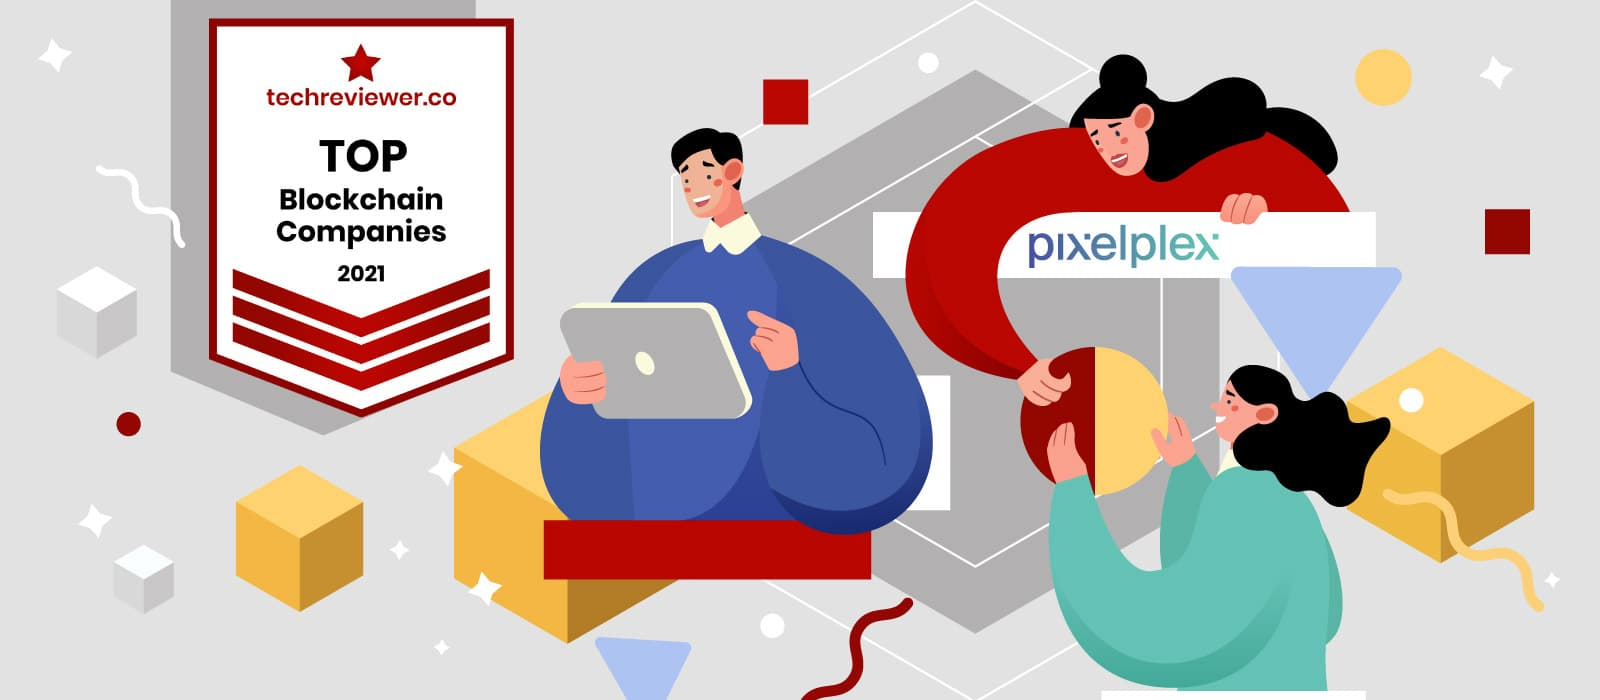 PixelPlex Is Recognized by Techreviewer as a Top Blockchain Development Company in 2021